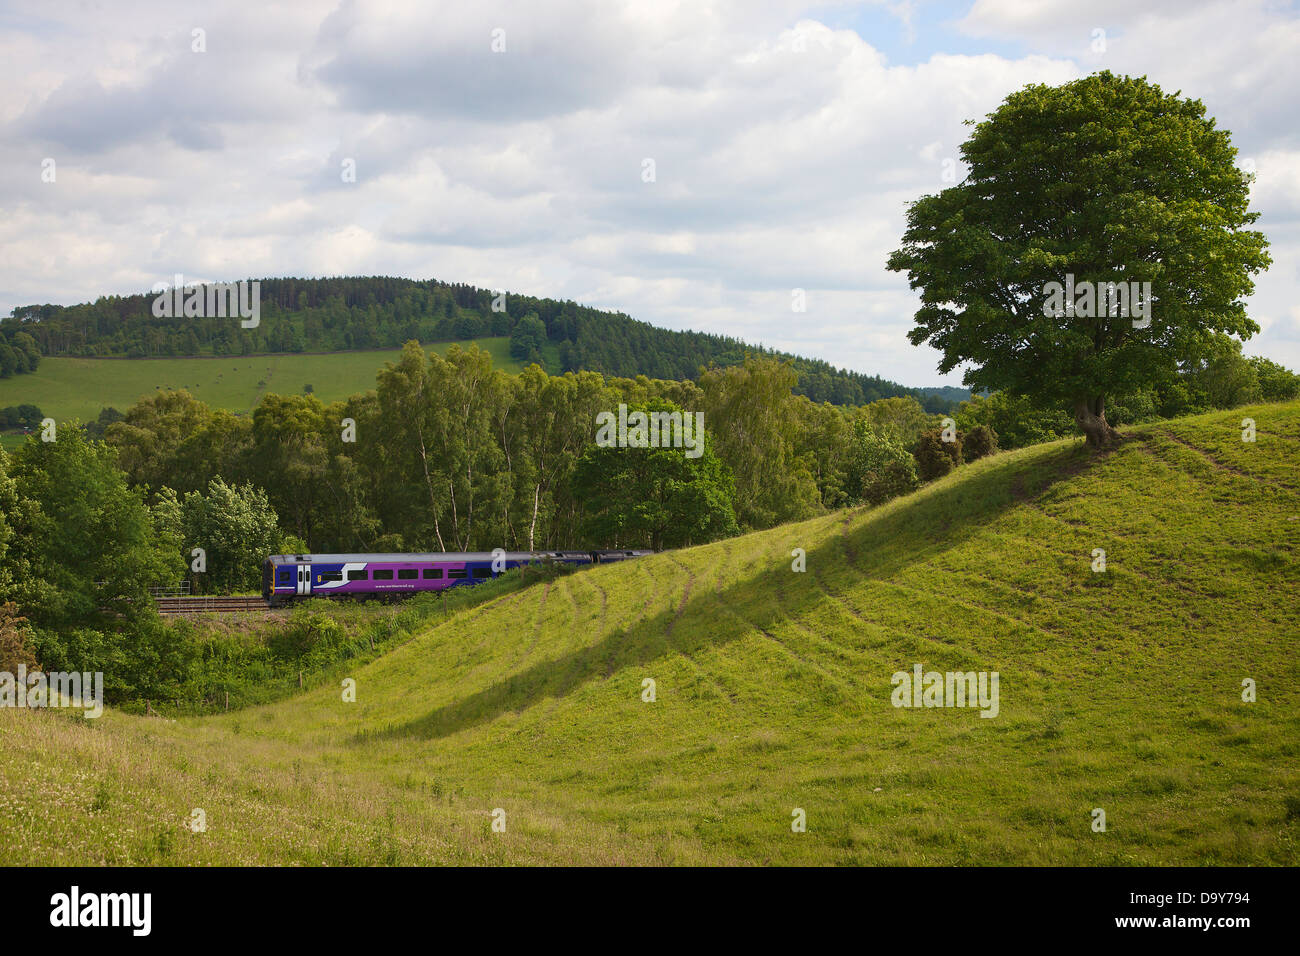 Rolling hill with tree and sprinter train on the Settle to Carlisle Line, Eden Valley, Cumbria, England, UK - Stock Image